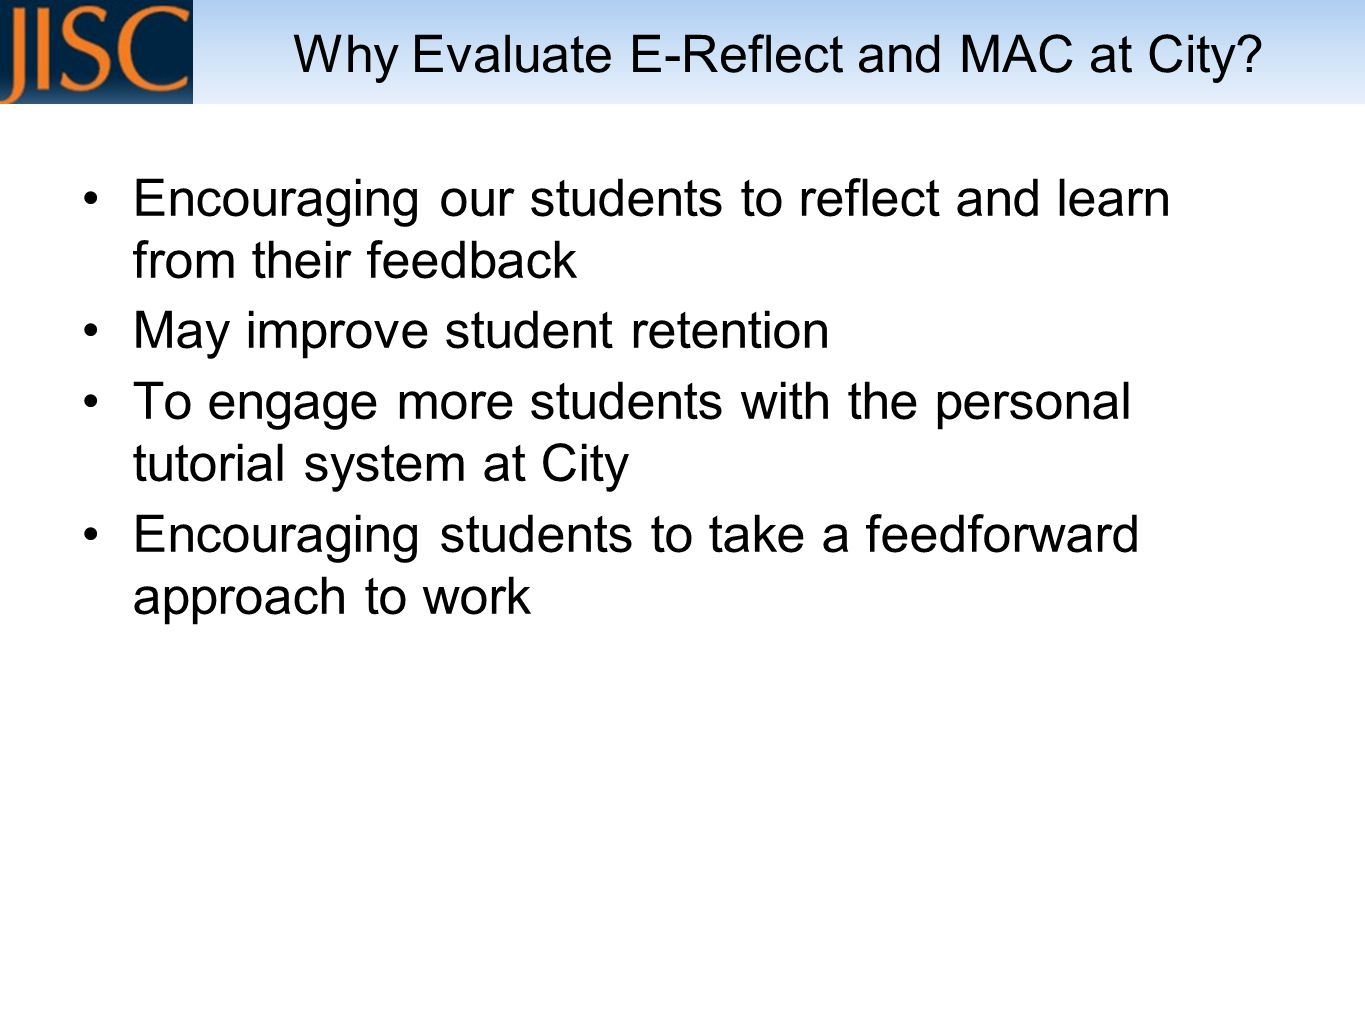 Encouraging our students to reflect and learn from their feedback May improve student retention To engage more students with the personal tutorial system at City Encouraging students to take a feedforward approach to work Why Evaluate E-Reflect and MAC at City?